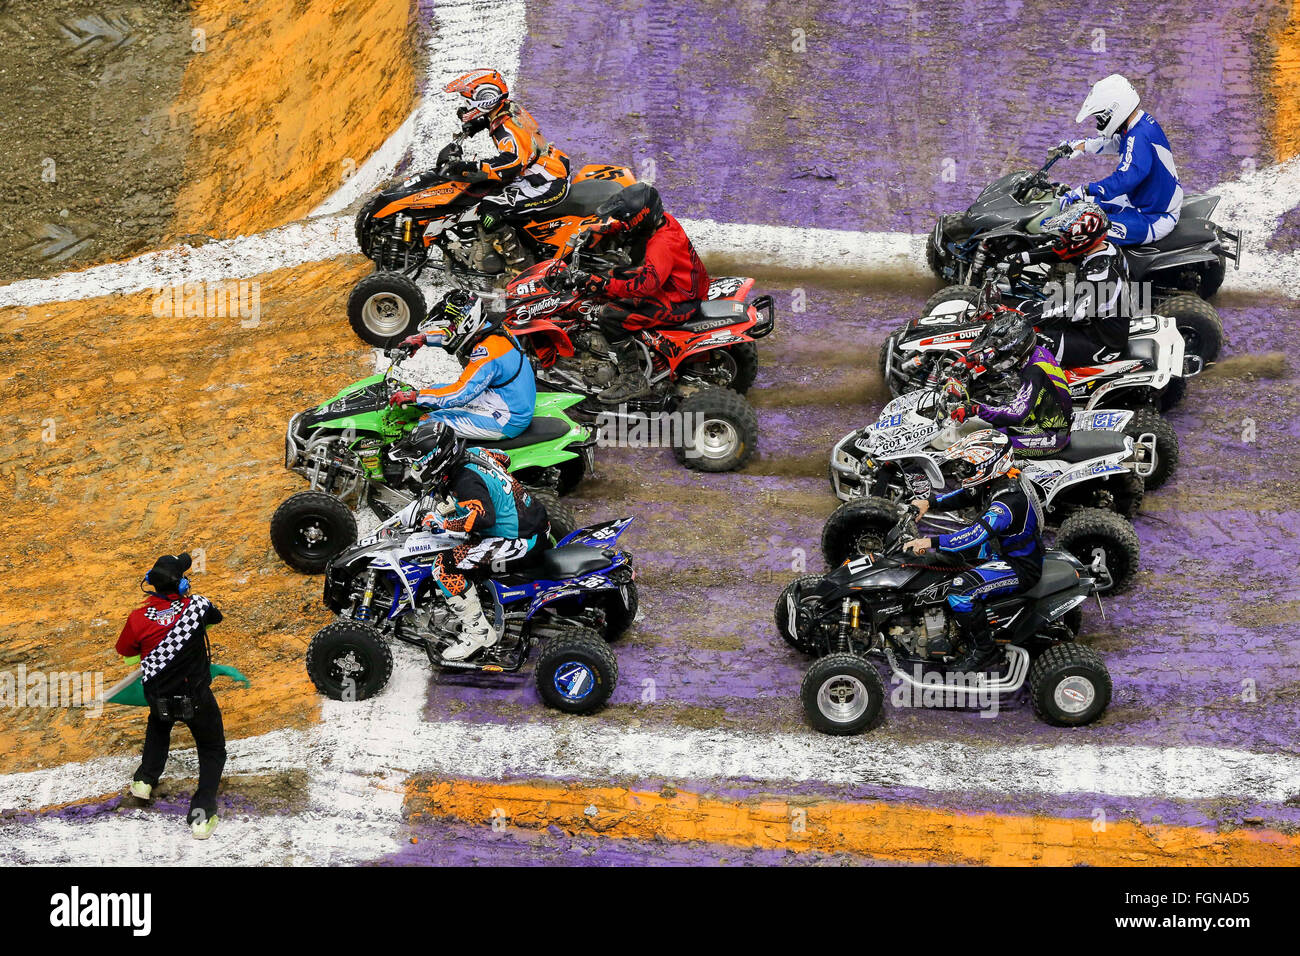 New Orleans, LA, USA  20th Feb, 2016  ATV racing during